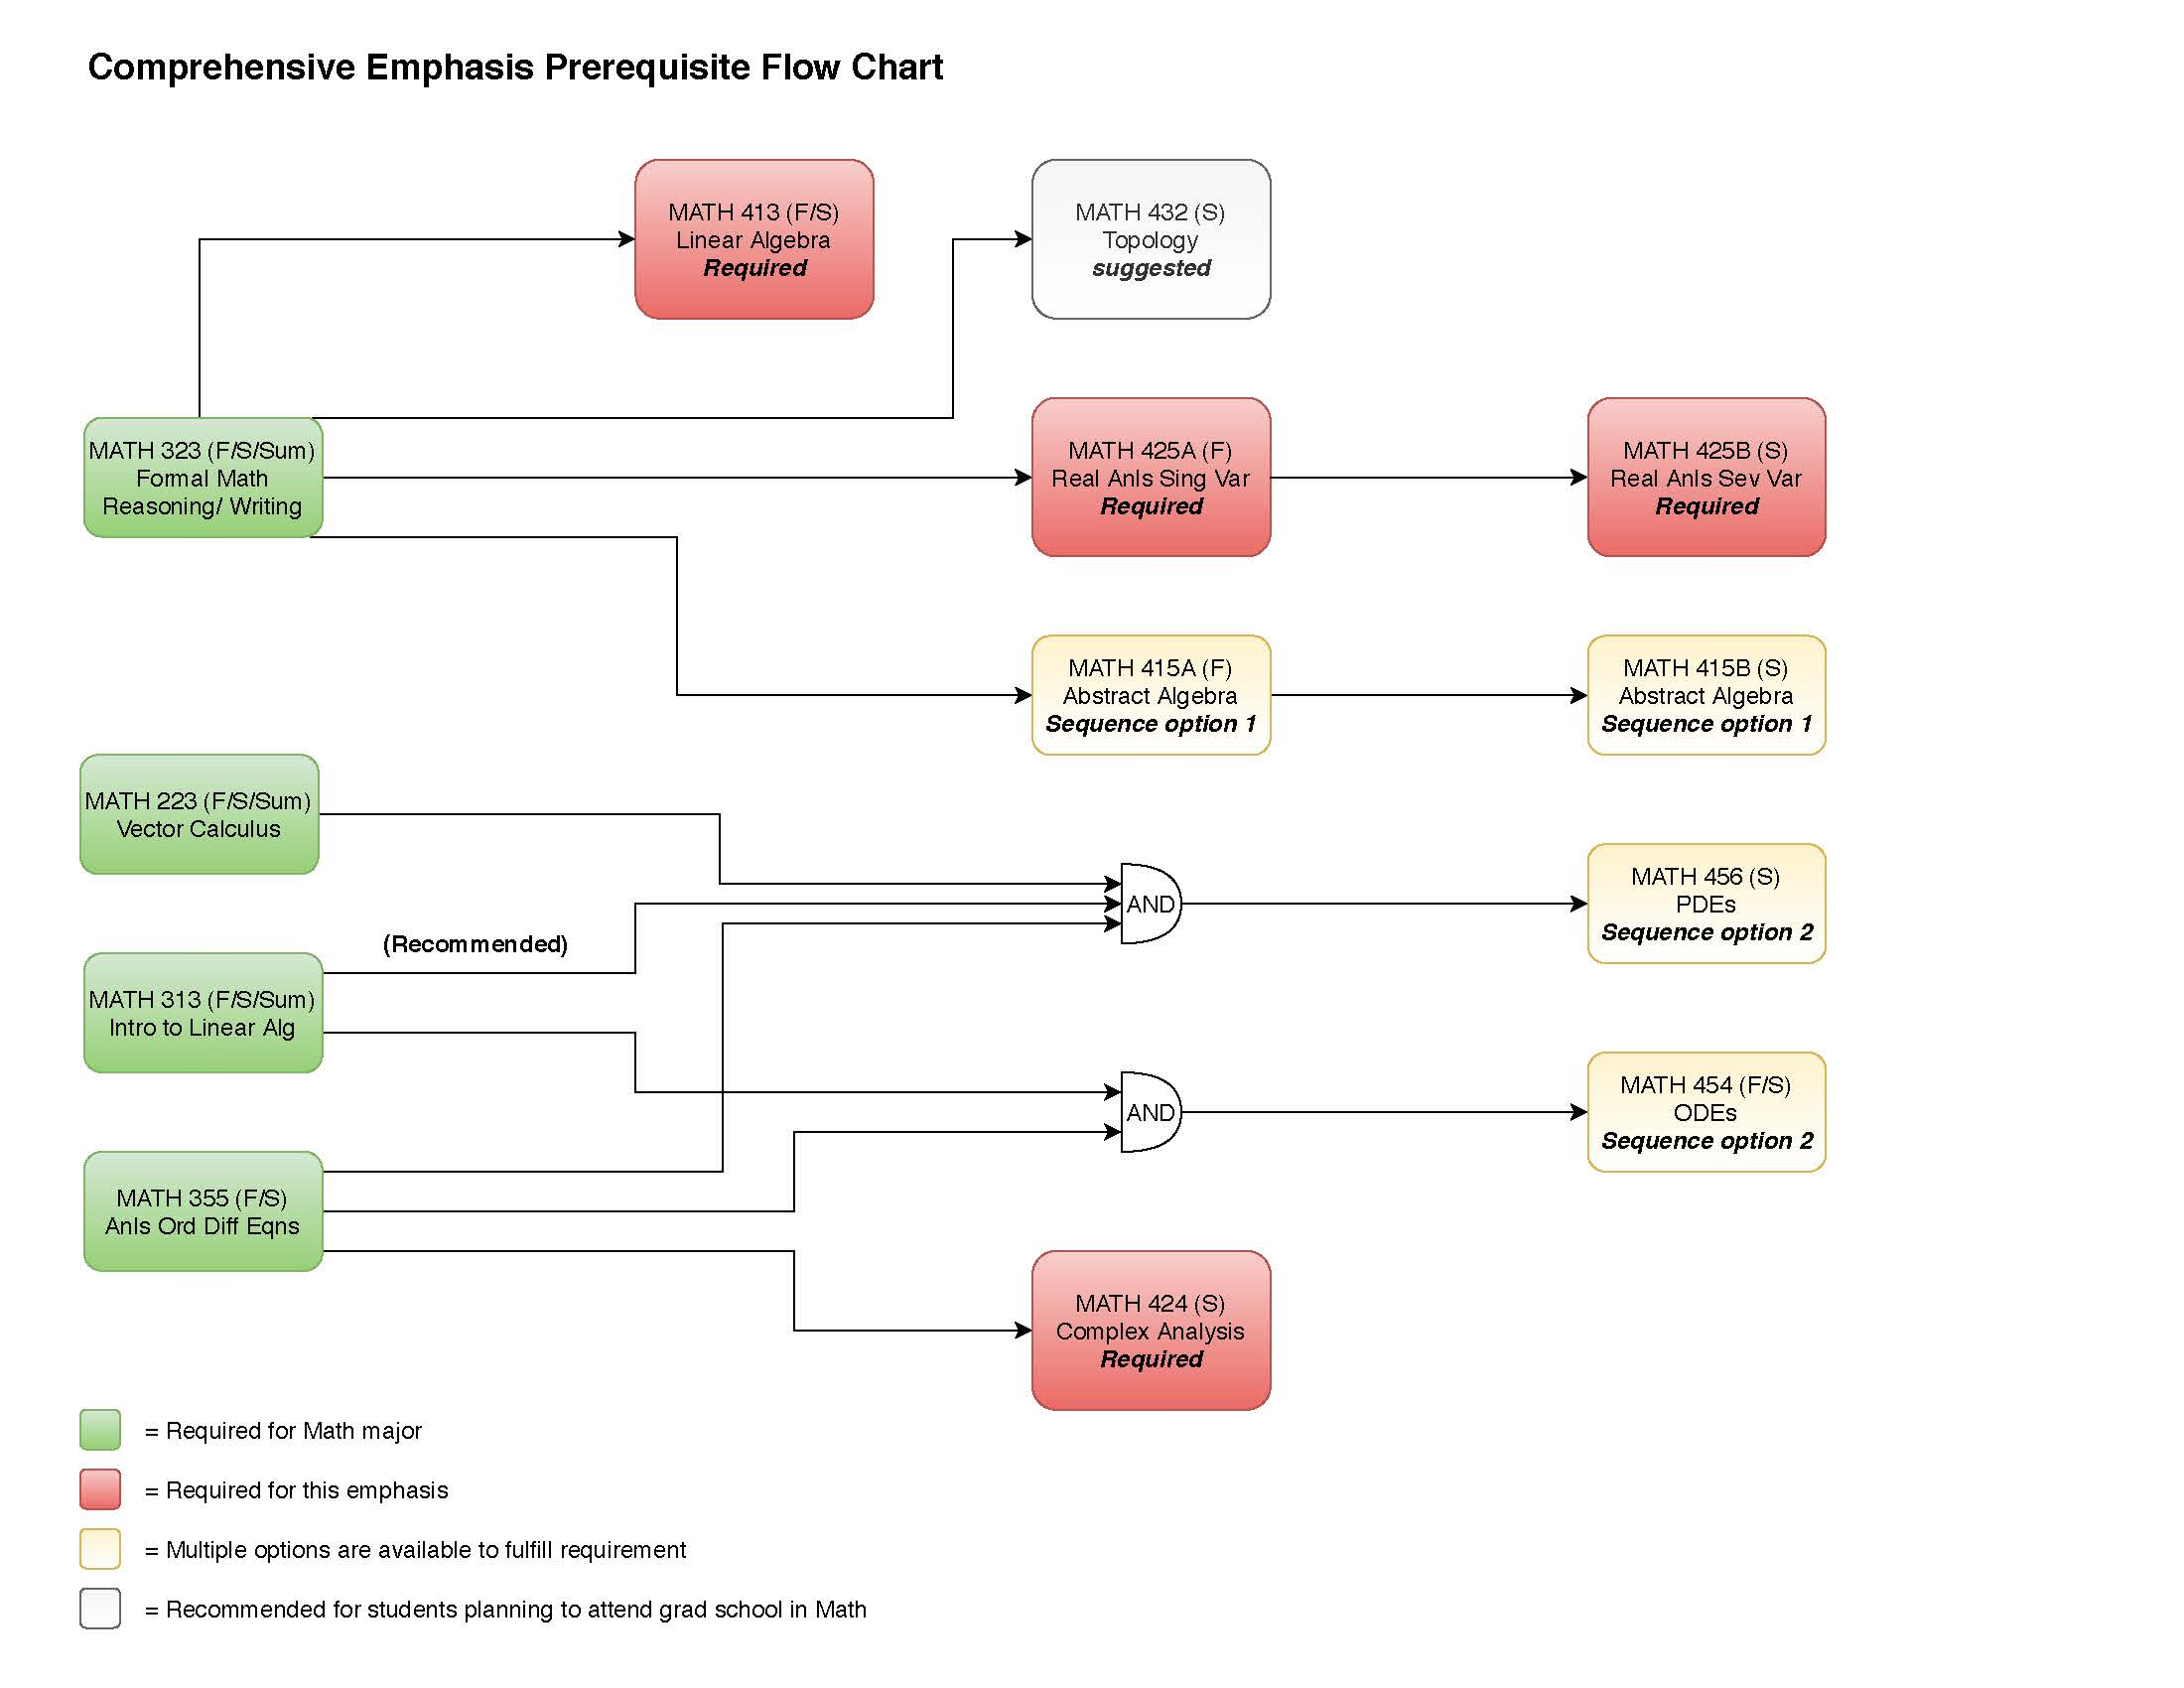 prerequisite flowchart for comprehensive emphasis